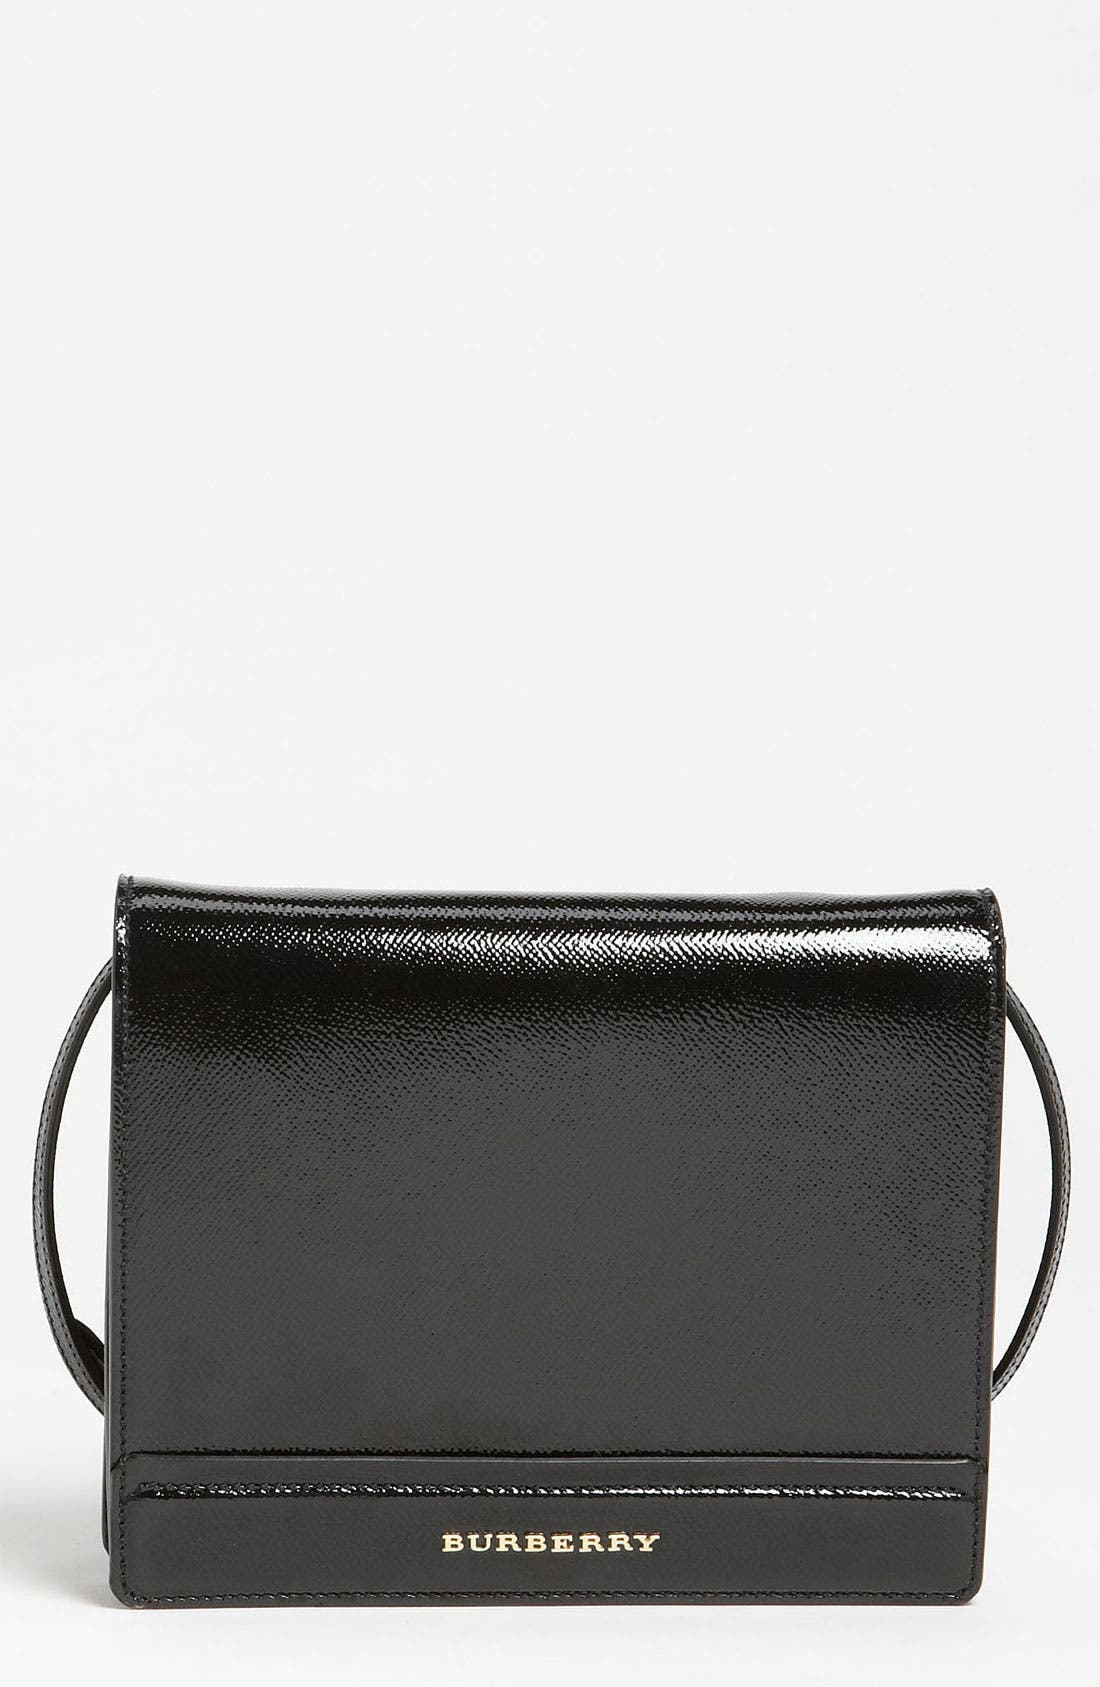 Main Image - Burberry Patent Leather Crossbody Bag